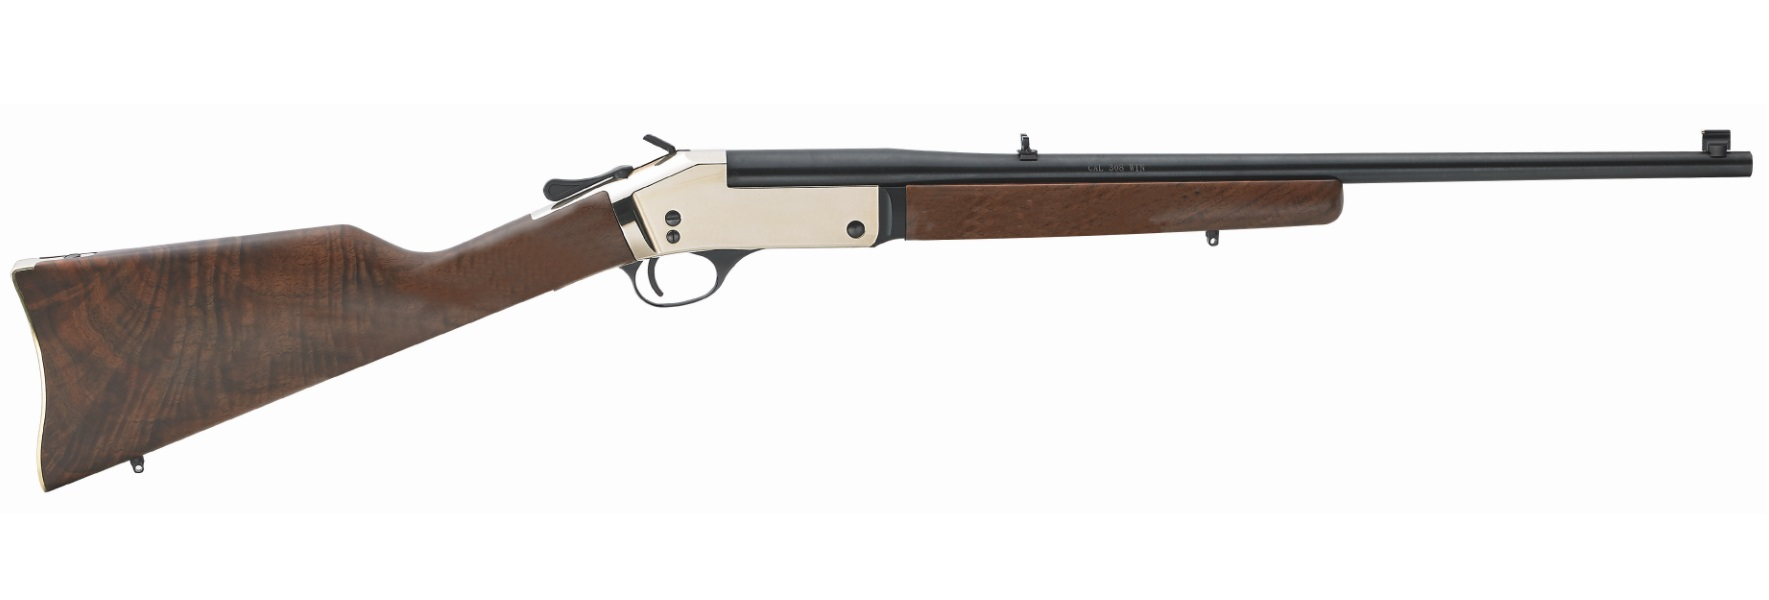 Henry Repeating Arms HENRY SINGLESHOT BRASS RIFLE 45-70 GOVT